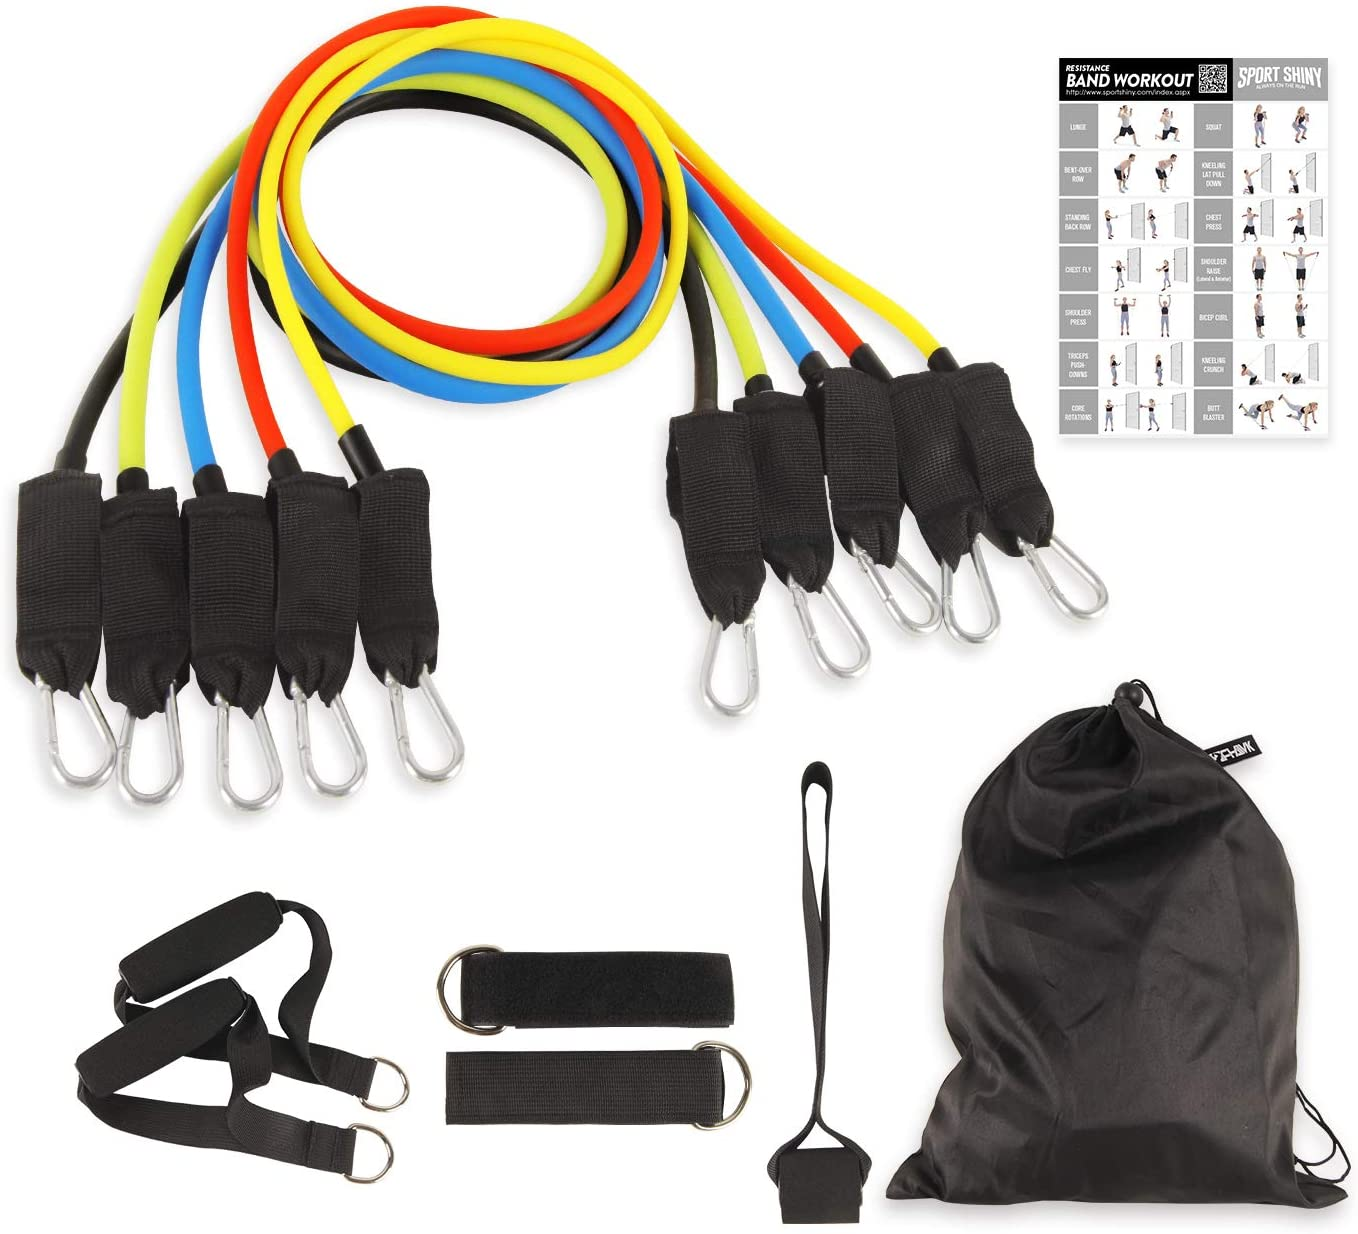 Sport Shiny Gymbasic Resistance Bands Set with Door Anchor, Ankle Strap, Exercise Chart, and Carrying Case